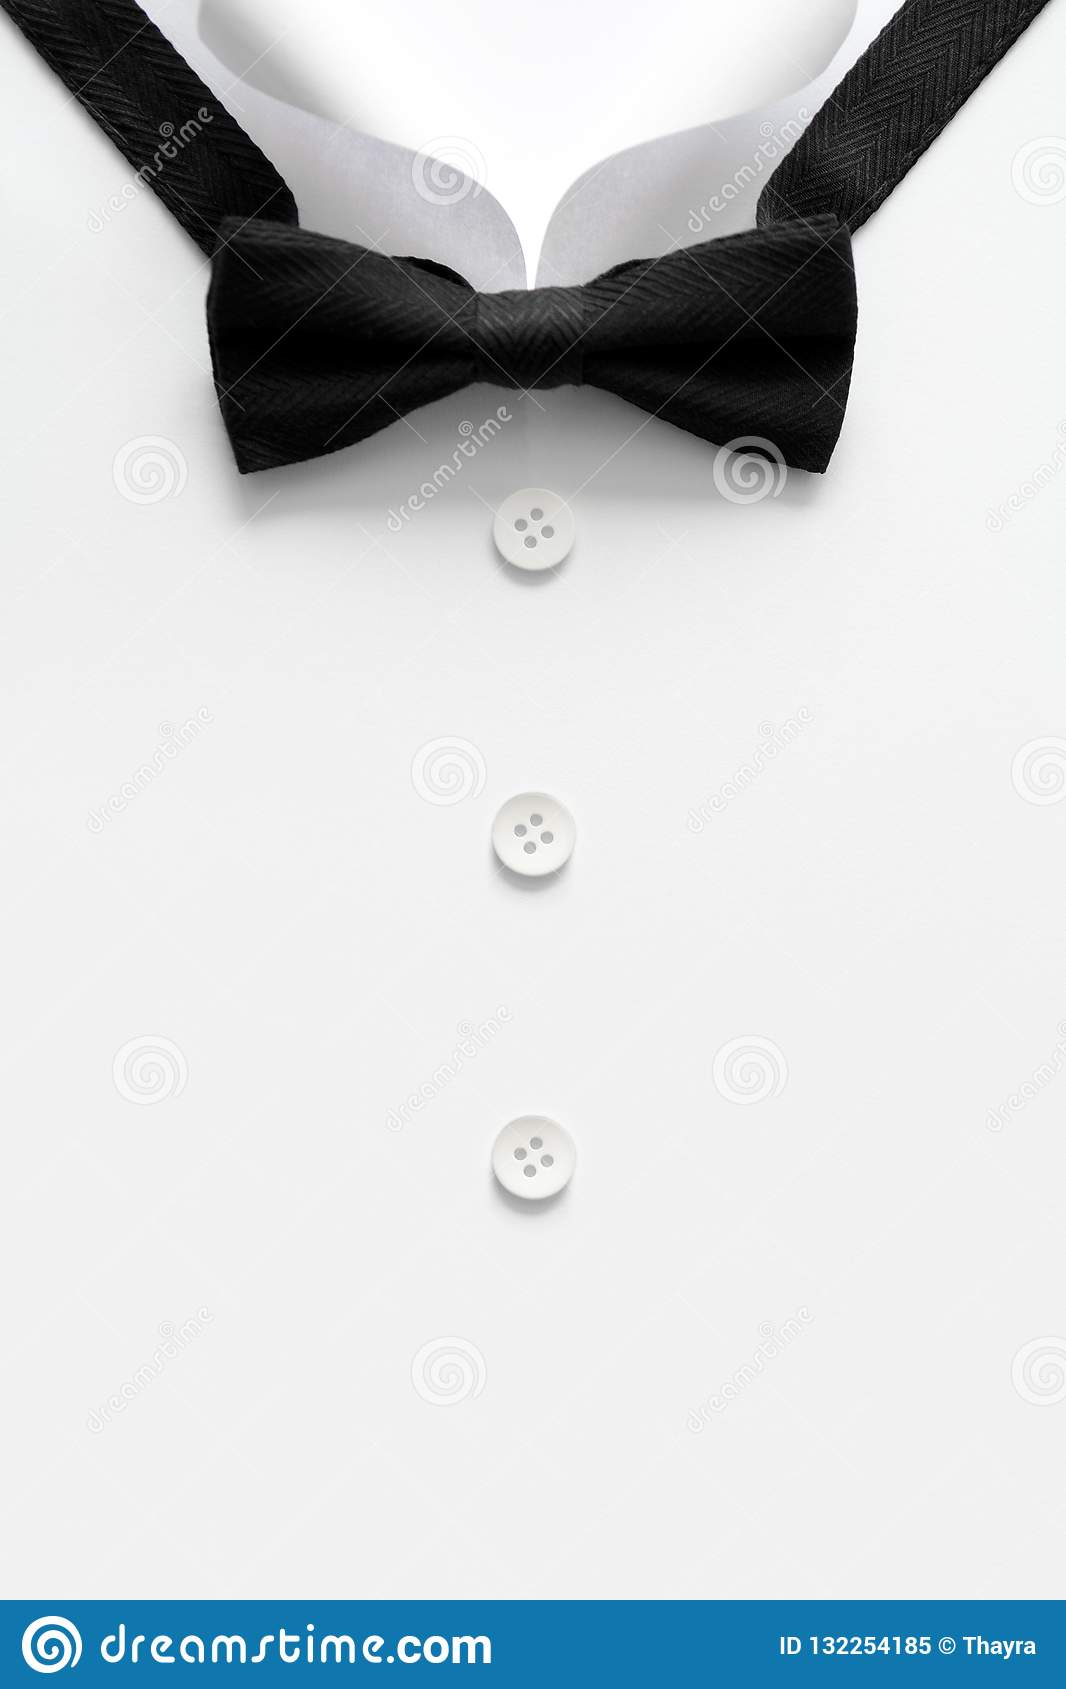 Paper cut collar of man shirts. Father`s day or wedding concept. Copy space. Top view. Minimalist style